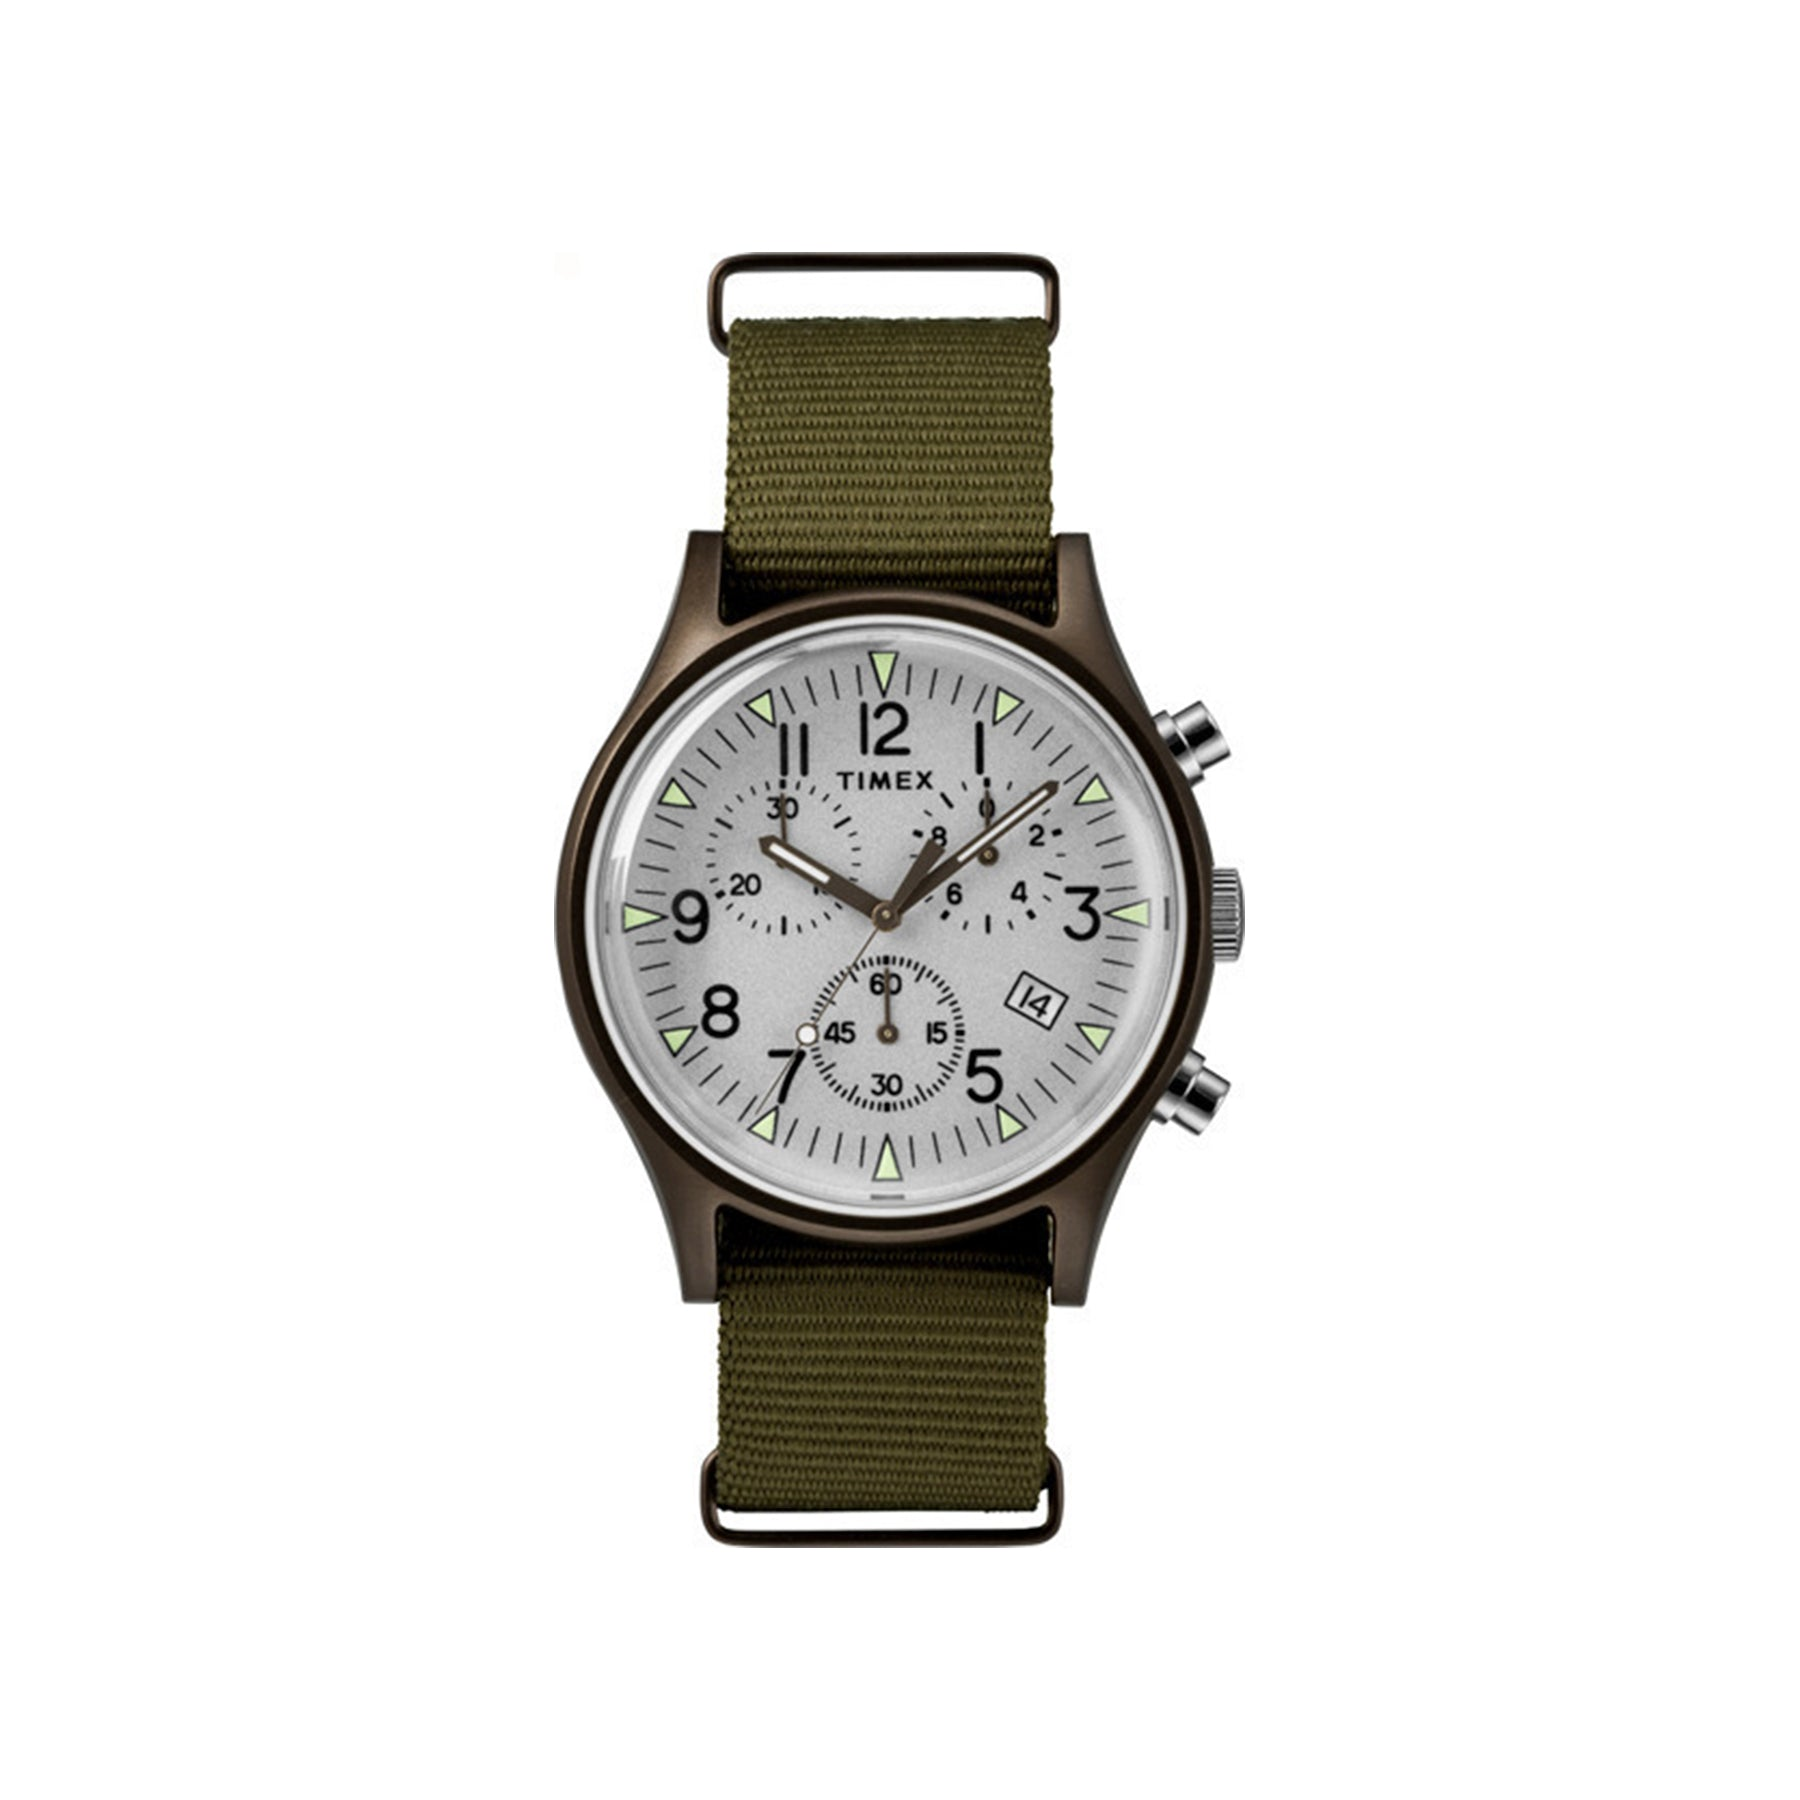 MK1 Chronograph 40mm Timex Watch - Olive Nylon Strap